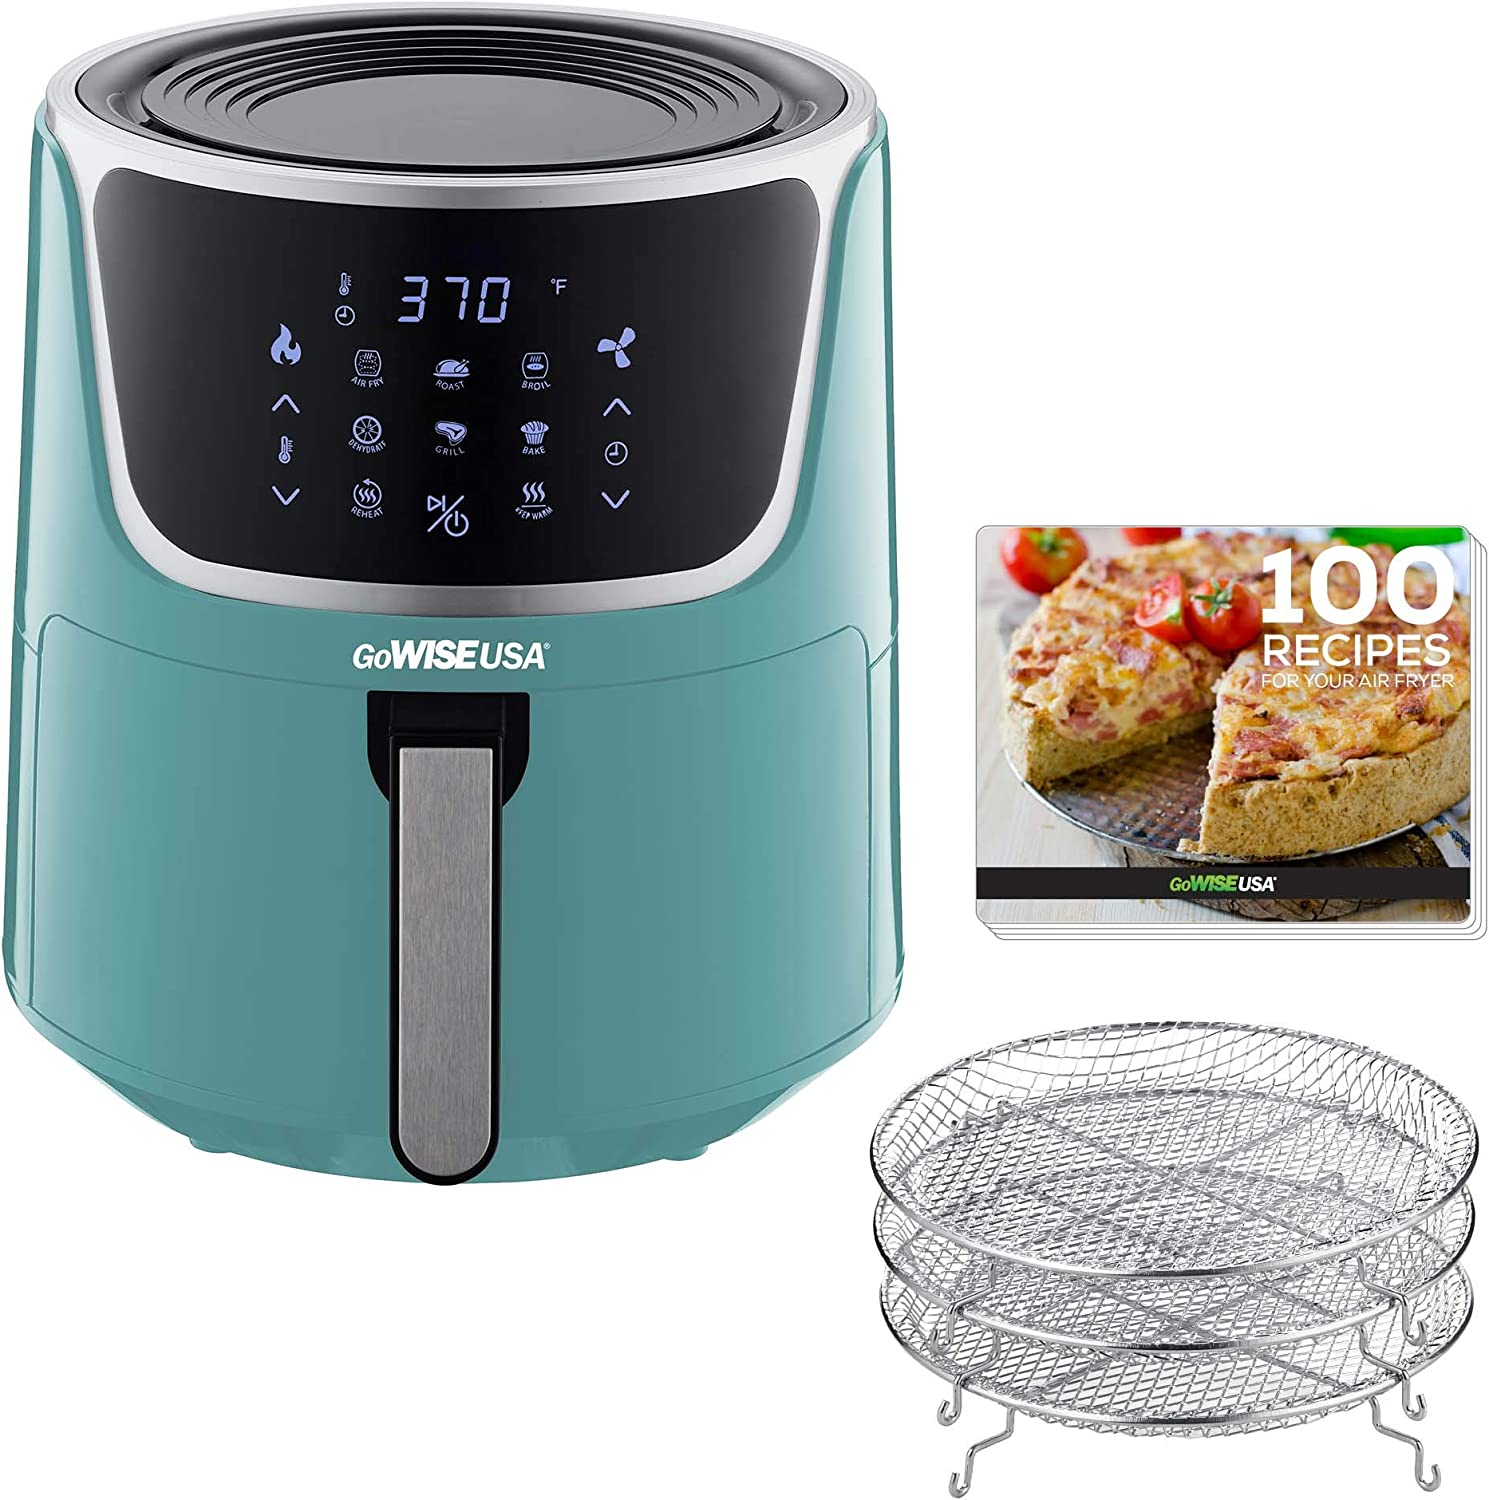 Recipe Book Mint//Silver 1.7 2 Qt Max 2.0 GoWISE USA GW22974 Electric Mini Air Fryer with Digital Touchscreen